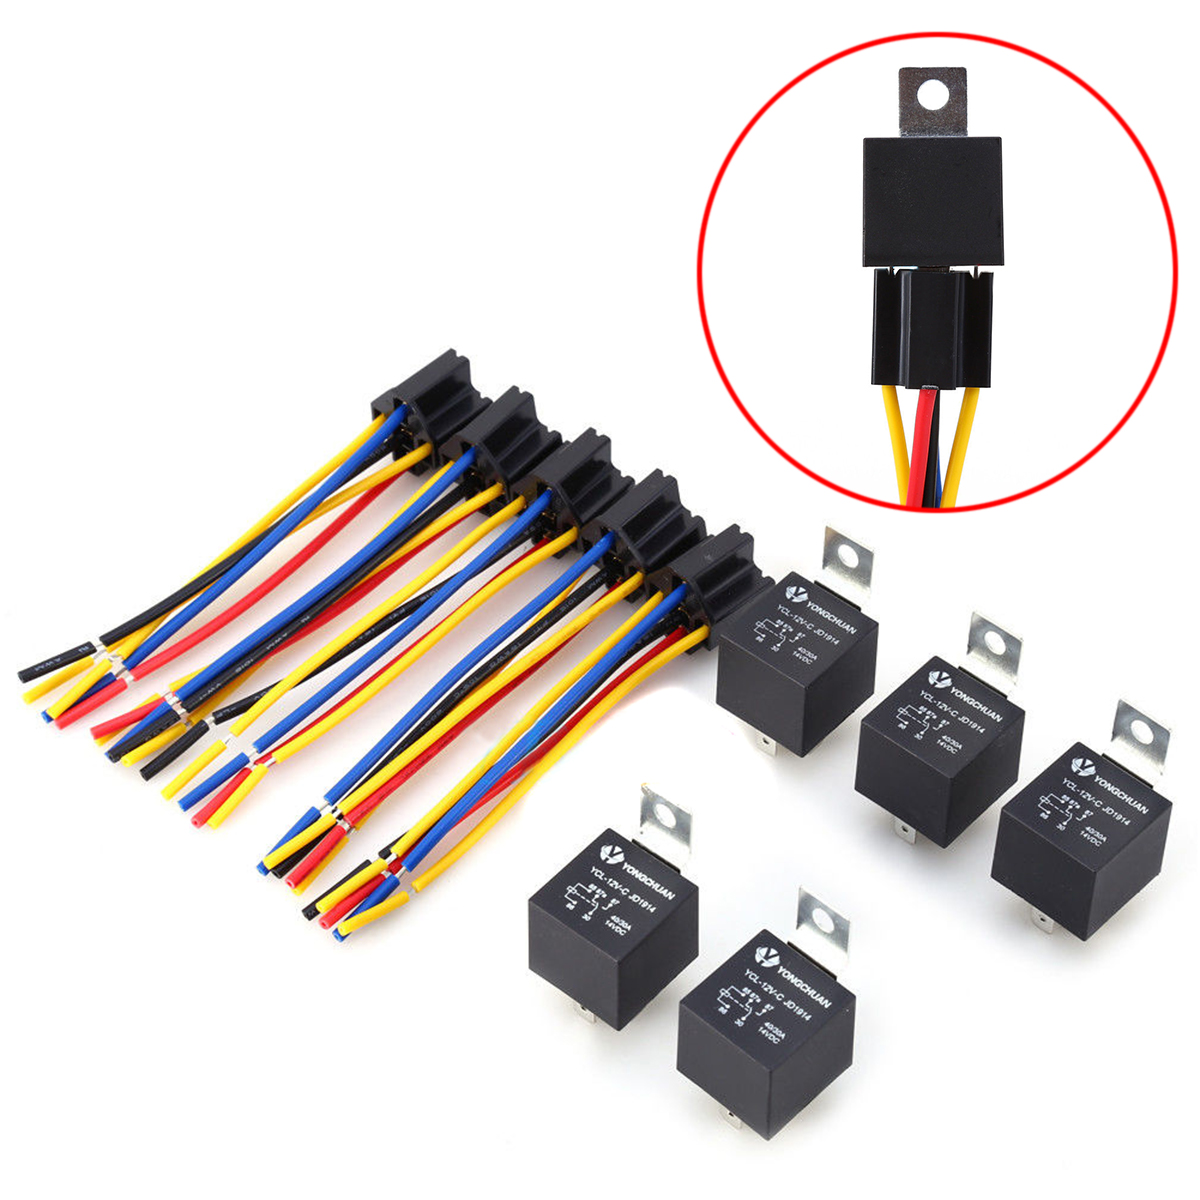 5 Pack Audiopipe 12 Volt 5 Pin SPDT 30-40 Amp Relay Sealed Auto Car Truck